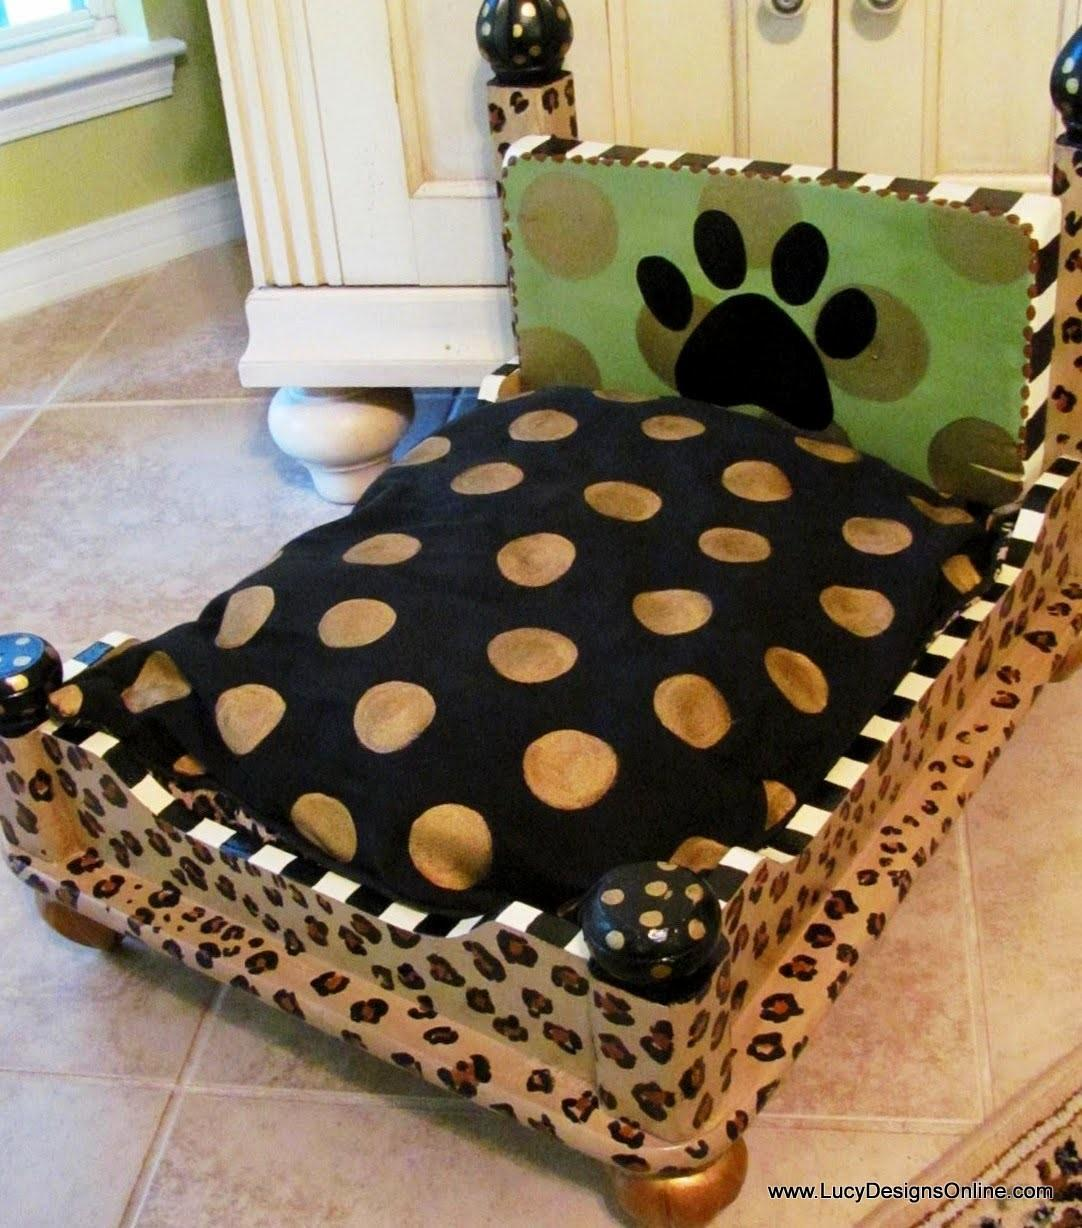 Dog Bed End Table Leopard Print Lucy Designs